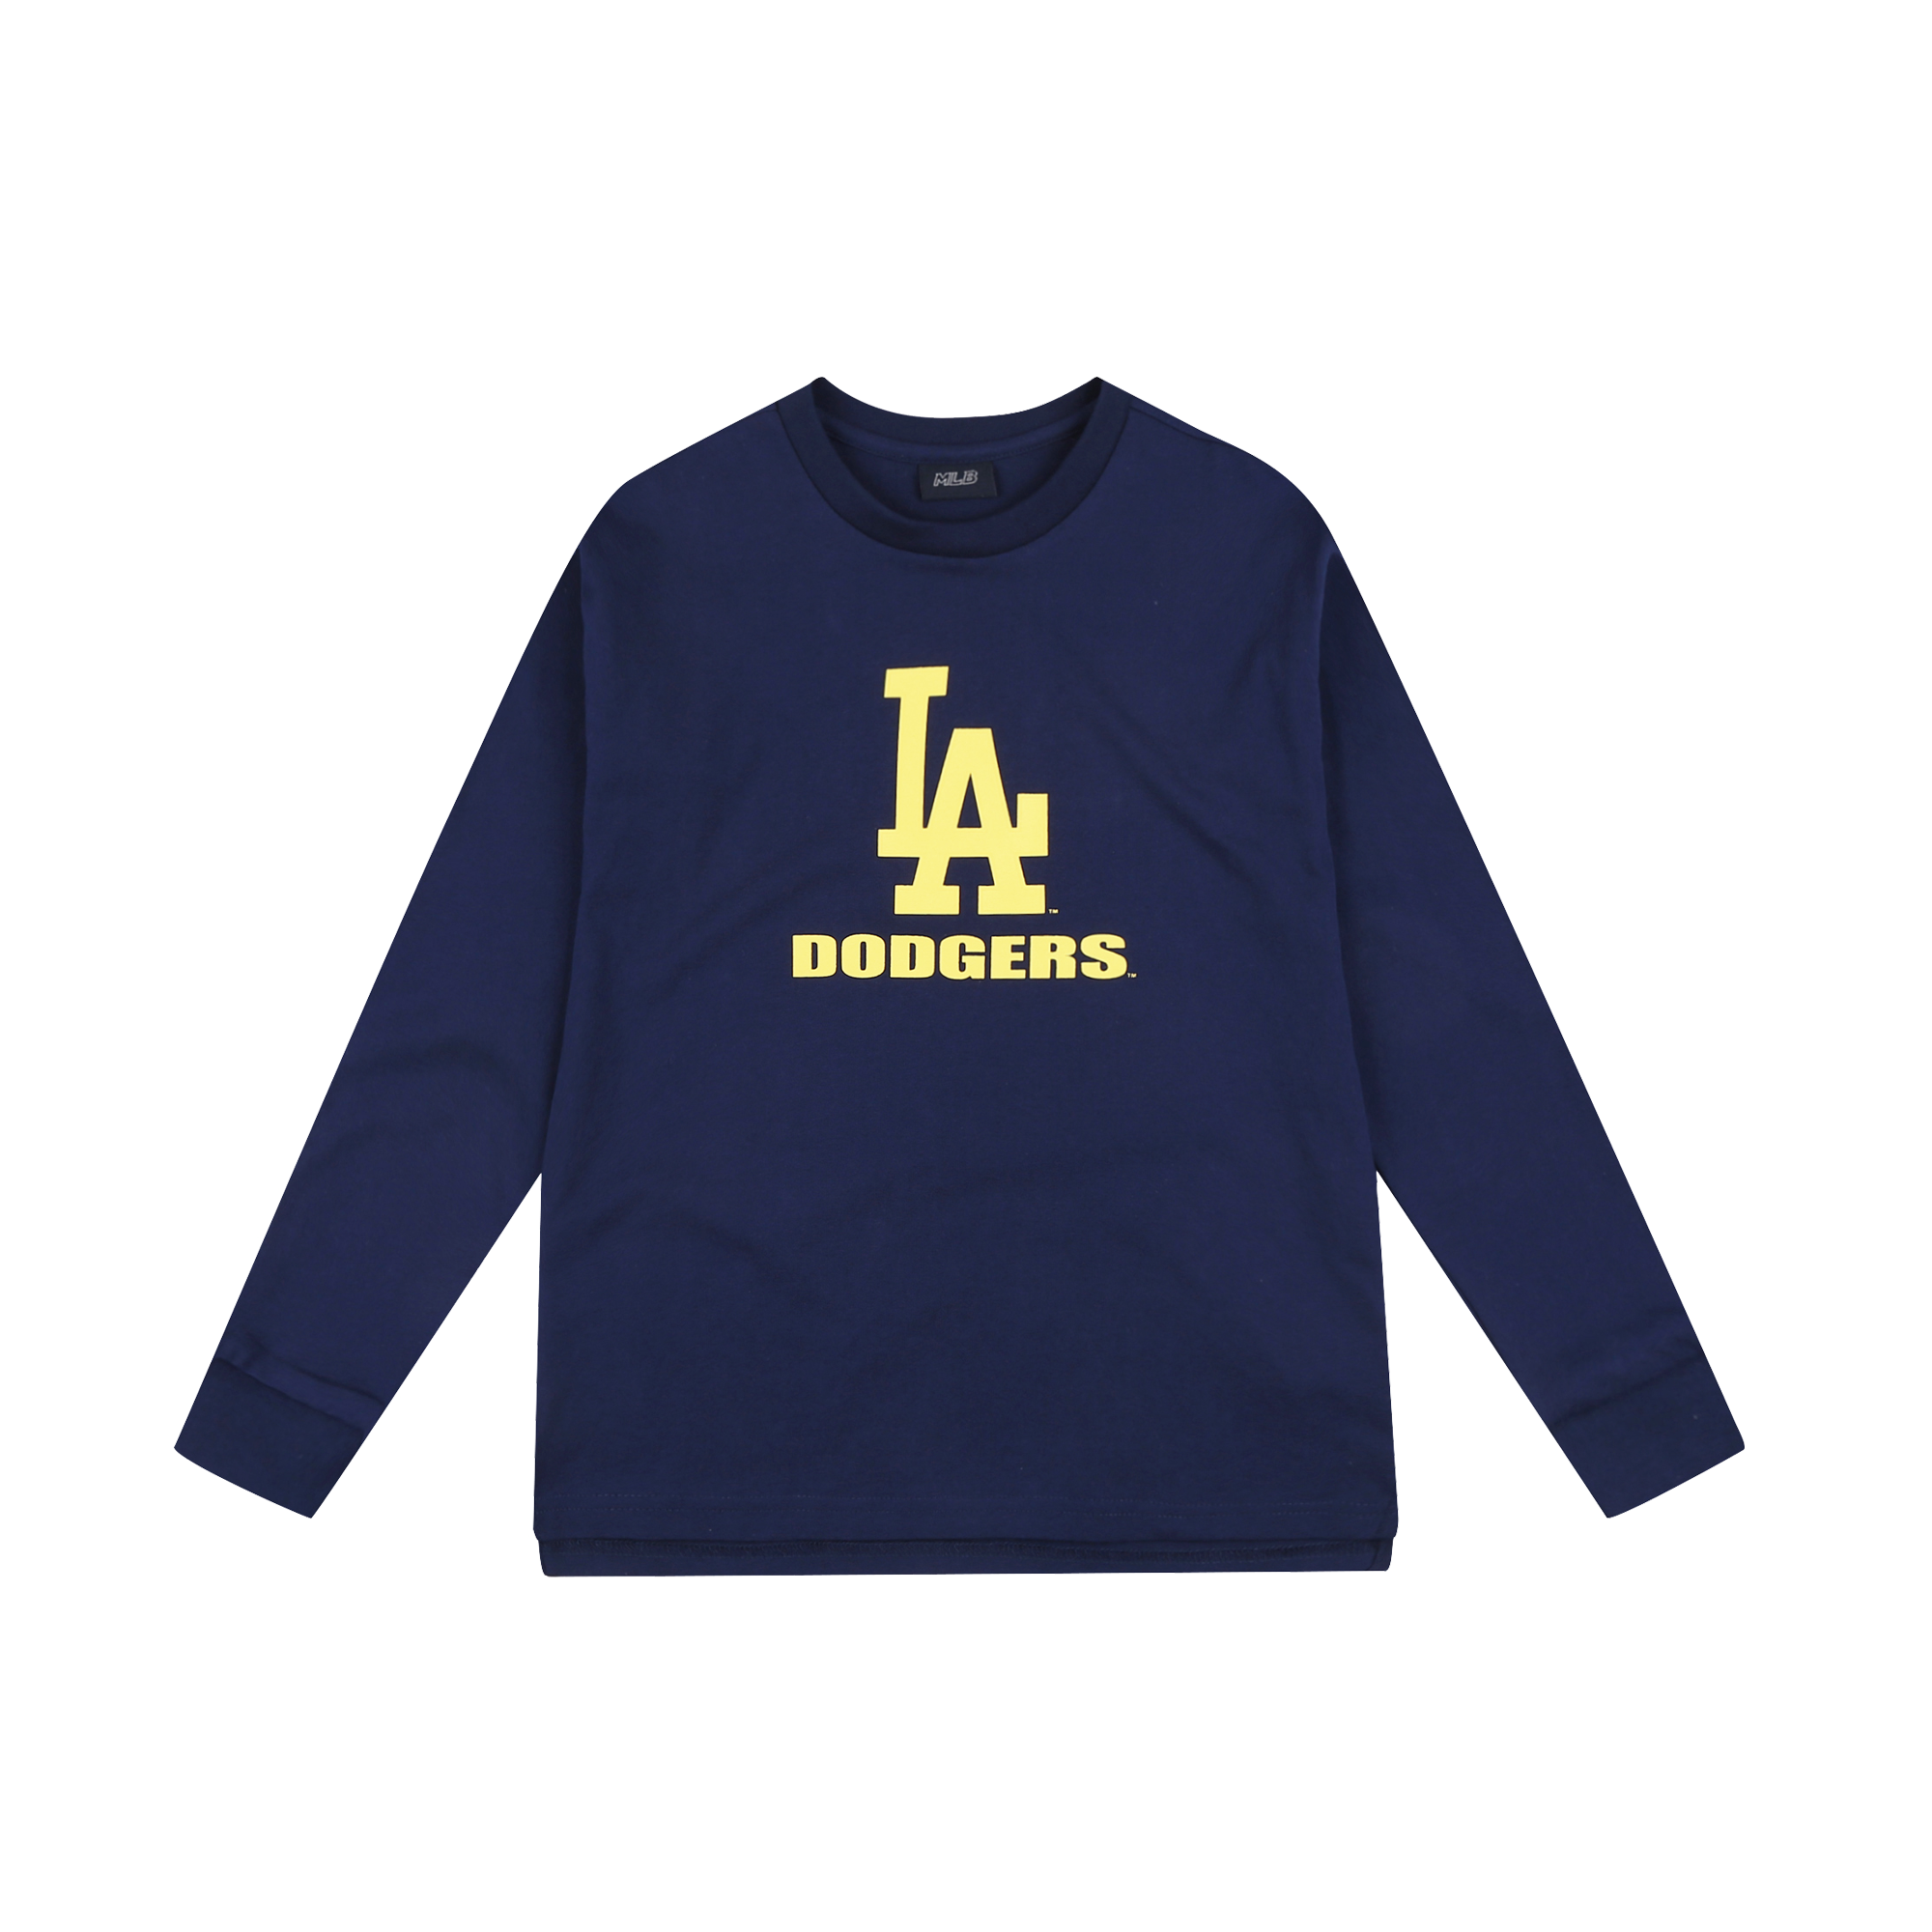 LA DODGERS UNISEX TWO TONE BICOLOR LOGO T-SHIRT